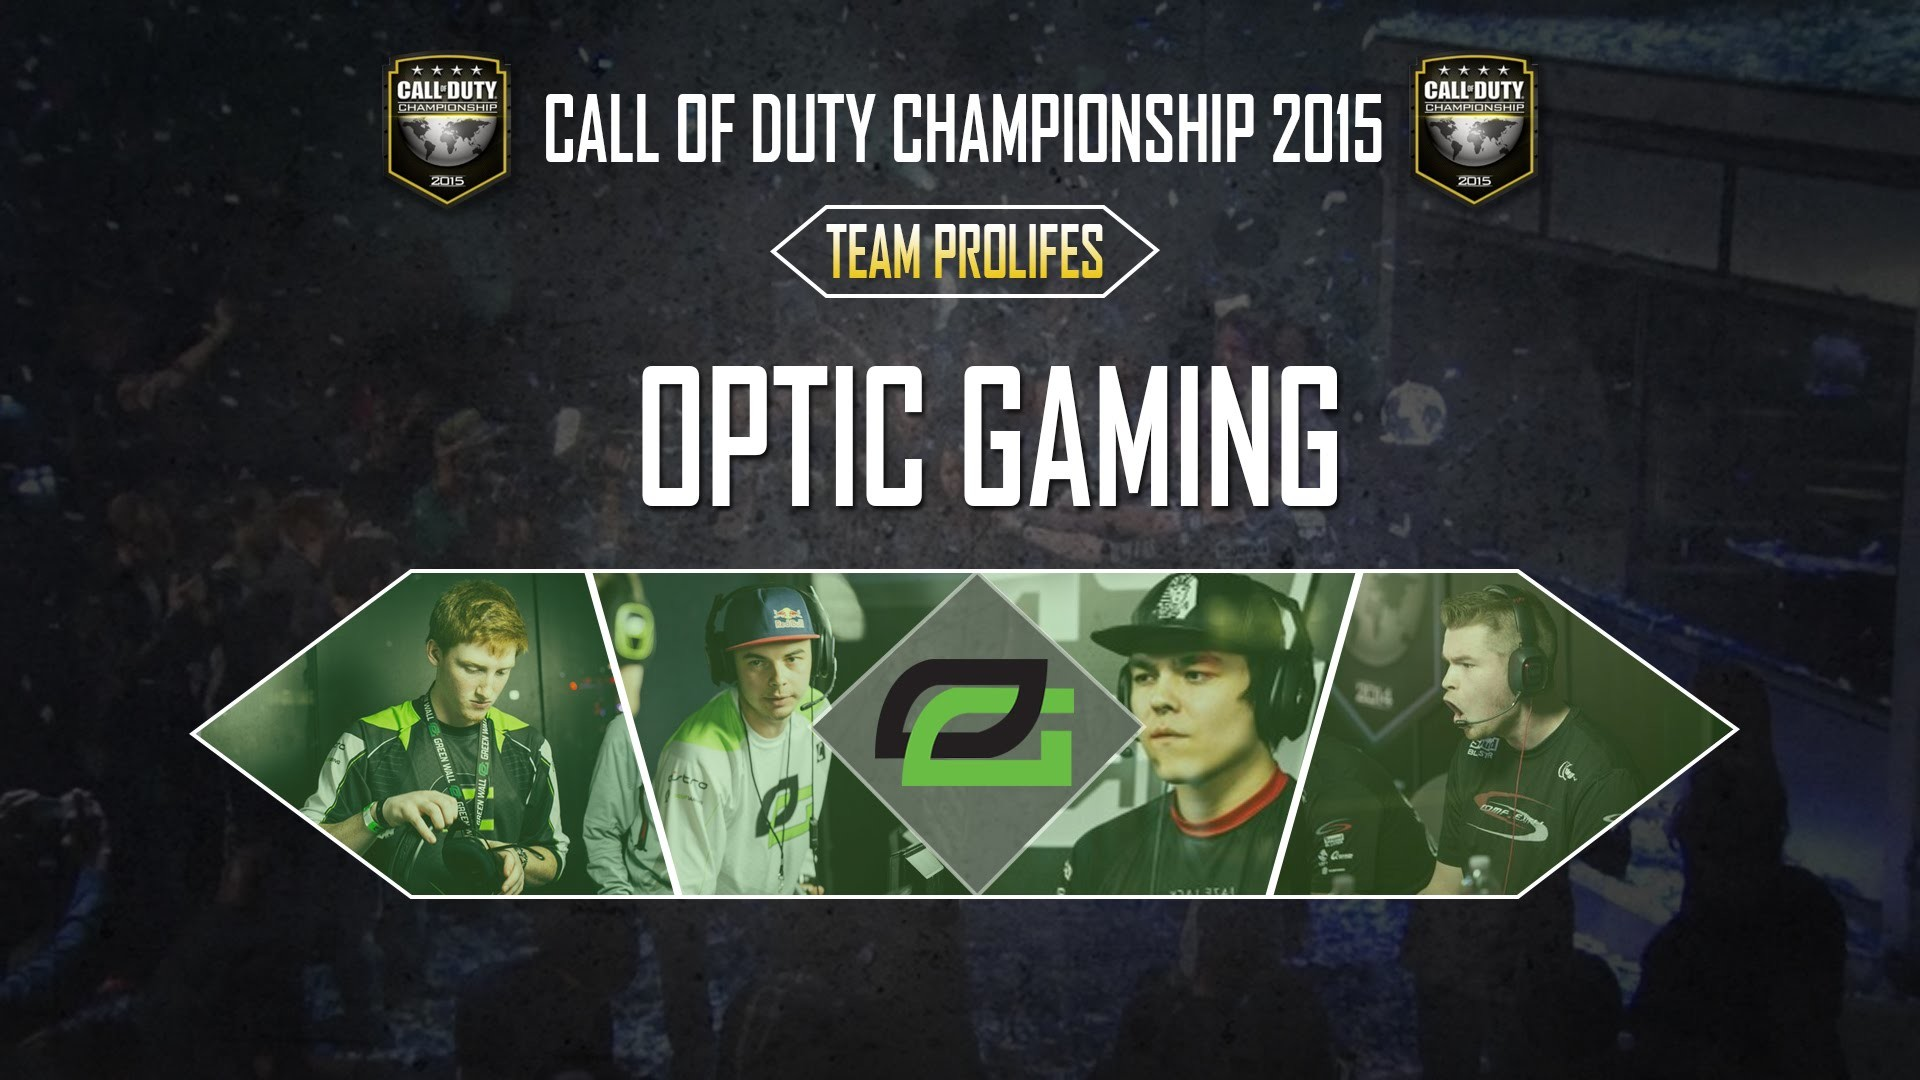 Call of Duty Championship 2015 | Team Profiles | OpTic Gaming – YouTube